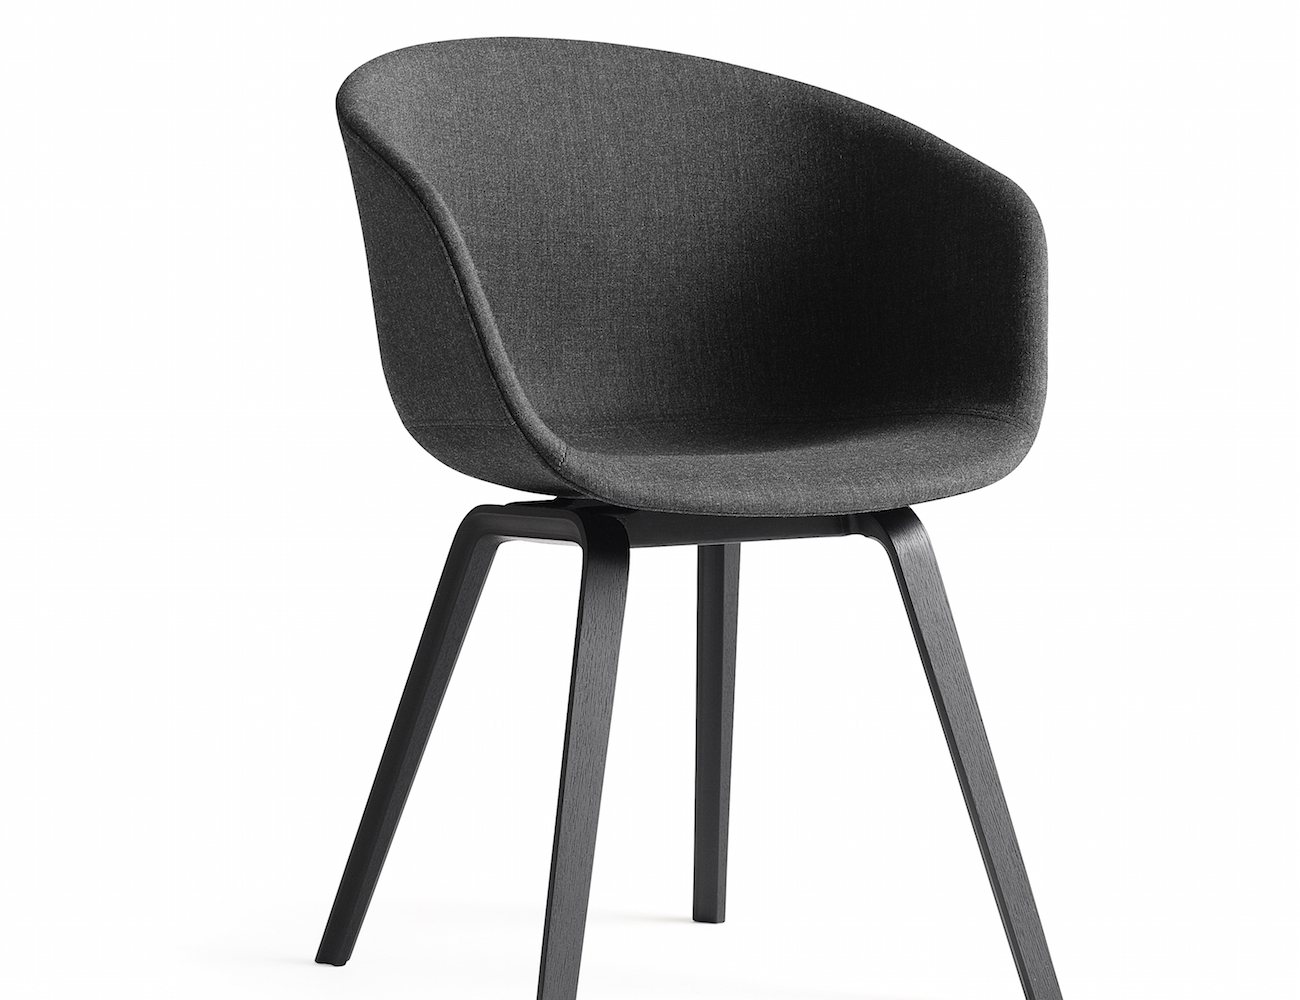 About Chairs